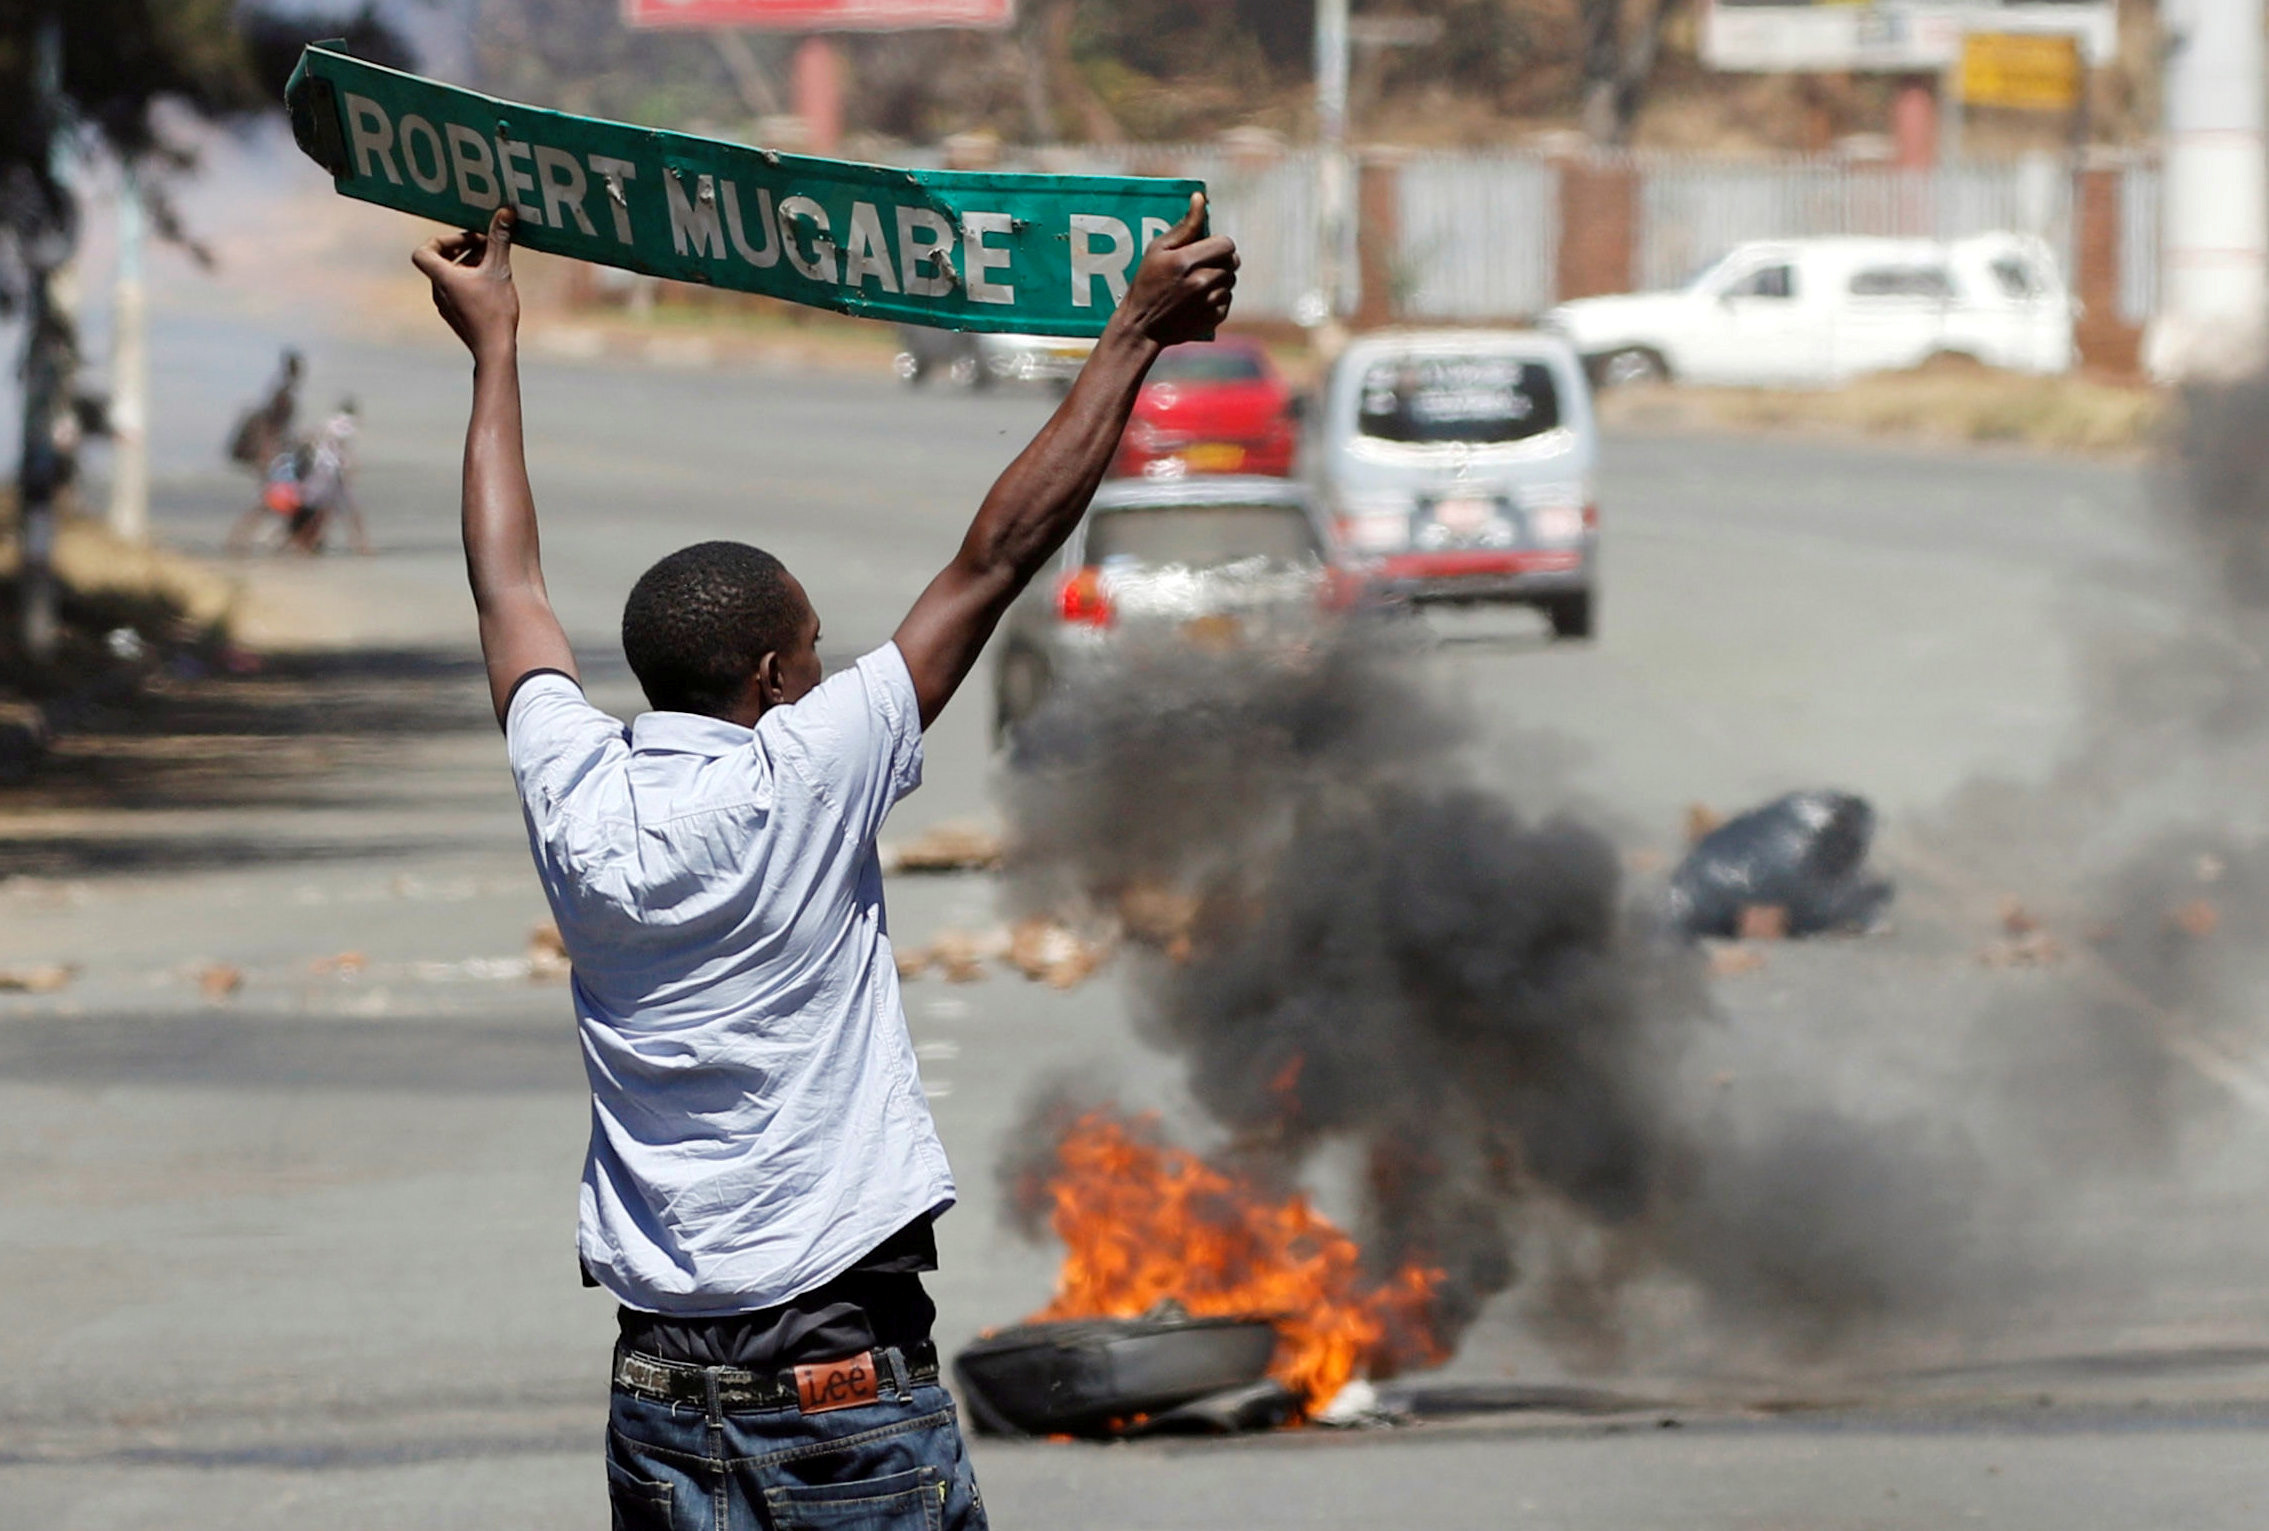 A man carries a street sign as opposition party supporters clash with police in Harare, Zimbabwe, August 26, 2016.